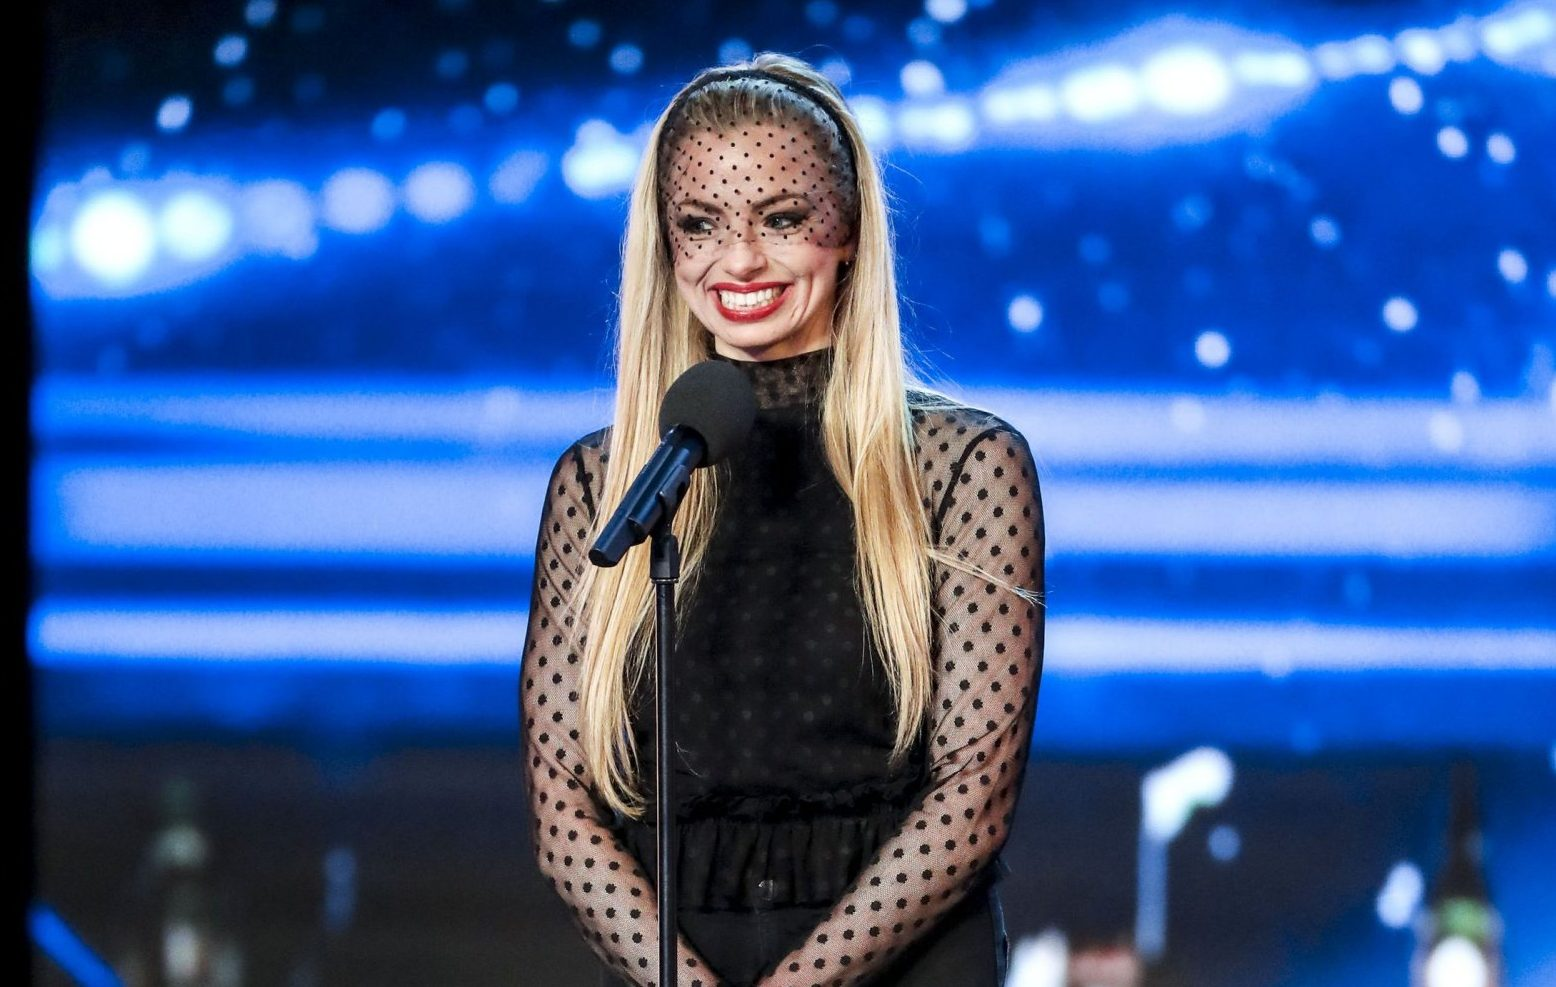 Embargoed to 0001 Saturday April 29 MANDATORY CREDIT REQUIRED: TOM DYMOND/SYCO/THAMES ITV undated handout photo of Josephine Lee during the audition stage for ITV1's talent show, Britain's Got Talent. PRESS ASSOCIATION Photo. Issue date: Saturday April 29, 2017. See PA story SHOWBIZ BGT. Photo credit should read: Tom Dymond/Syco/Thames/PA Wire NOTE TO EDITORS: This handout photo may only be used in for editorial reporting purposes for the contemporaneous illustration of events, things or the people in the image or facts mentioned in the caption. Reuse of the picture may require further permission from the copyright holder.